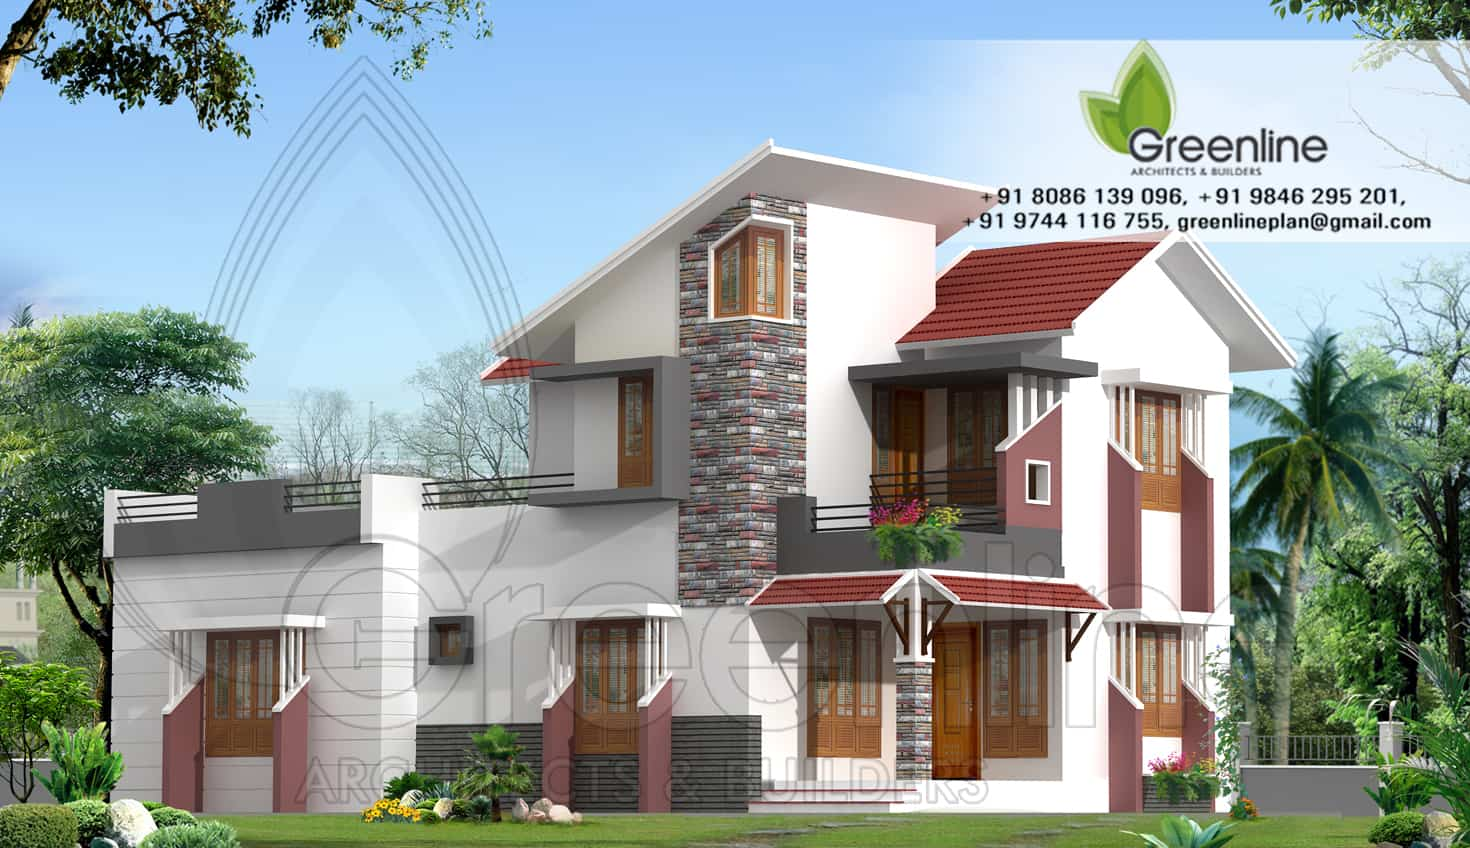 3 bedroom kerala style house design for Www kerala house designs com